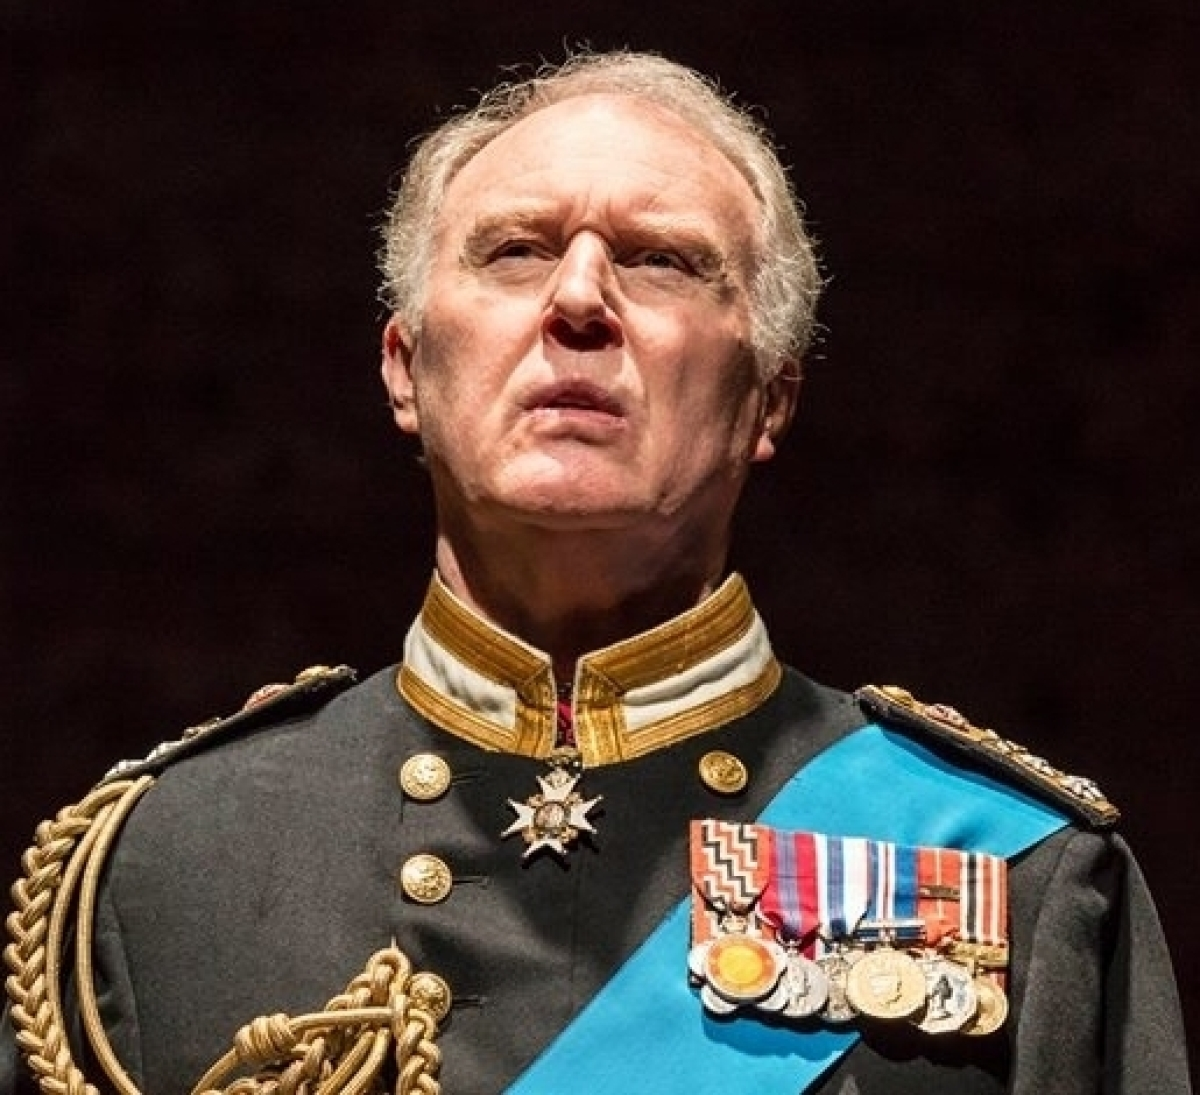 Broadway S King Charles Iii Announces Rush Policy